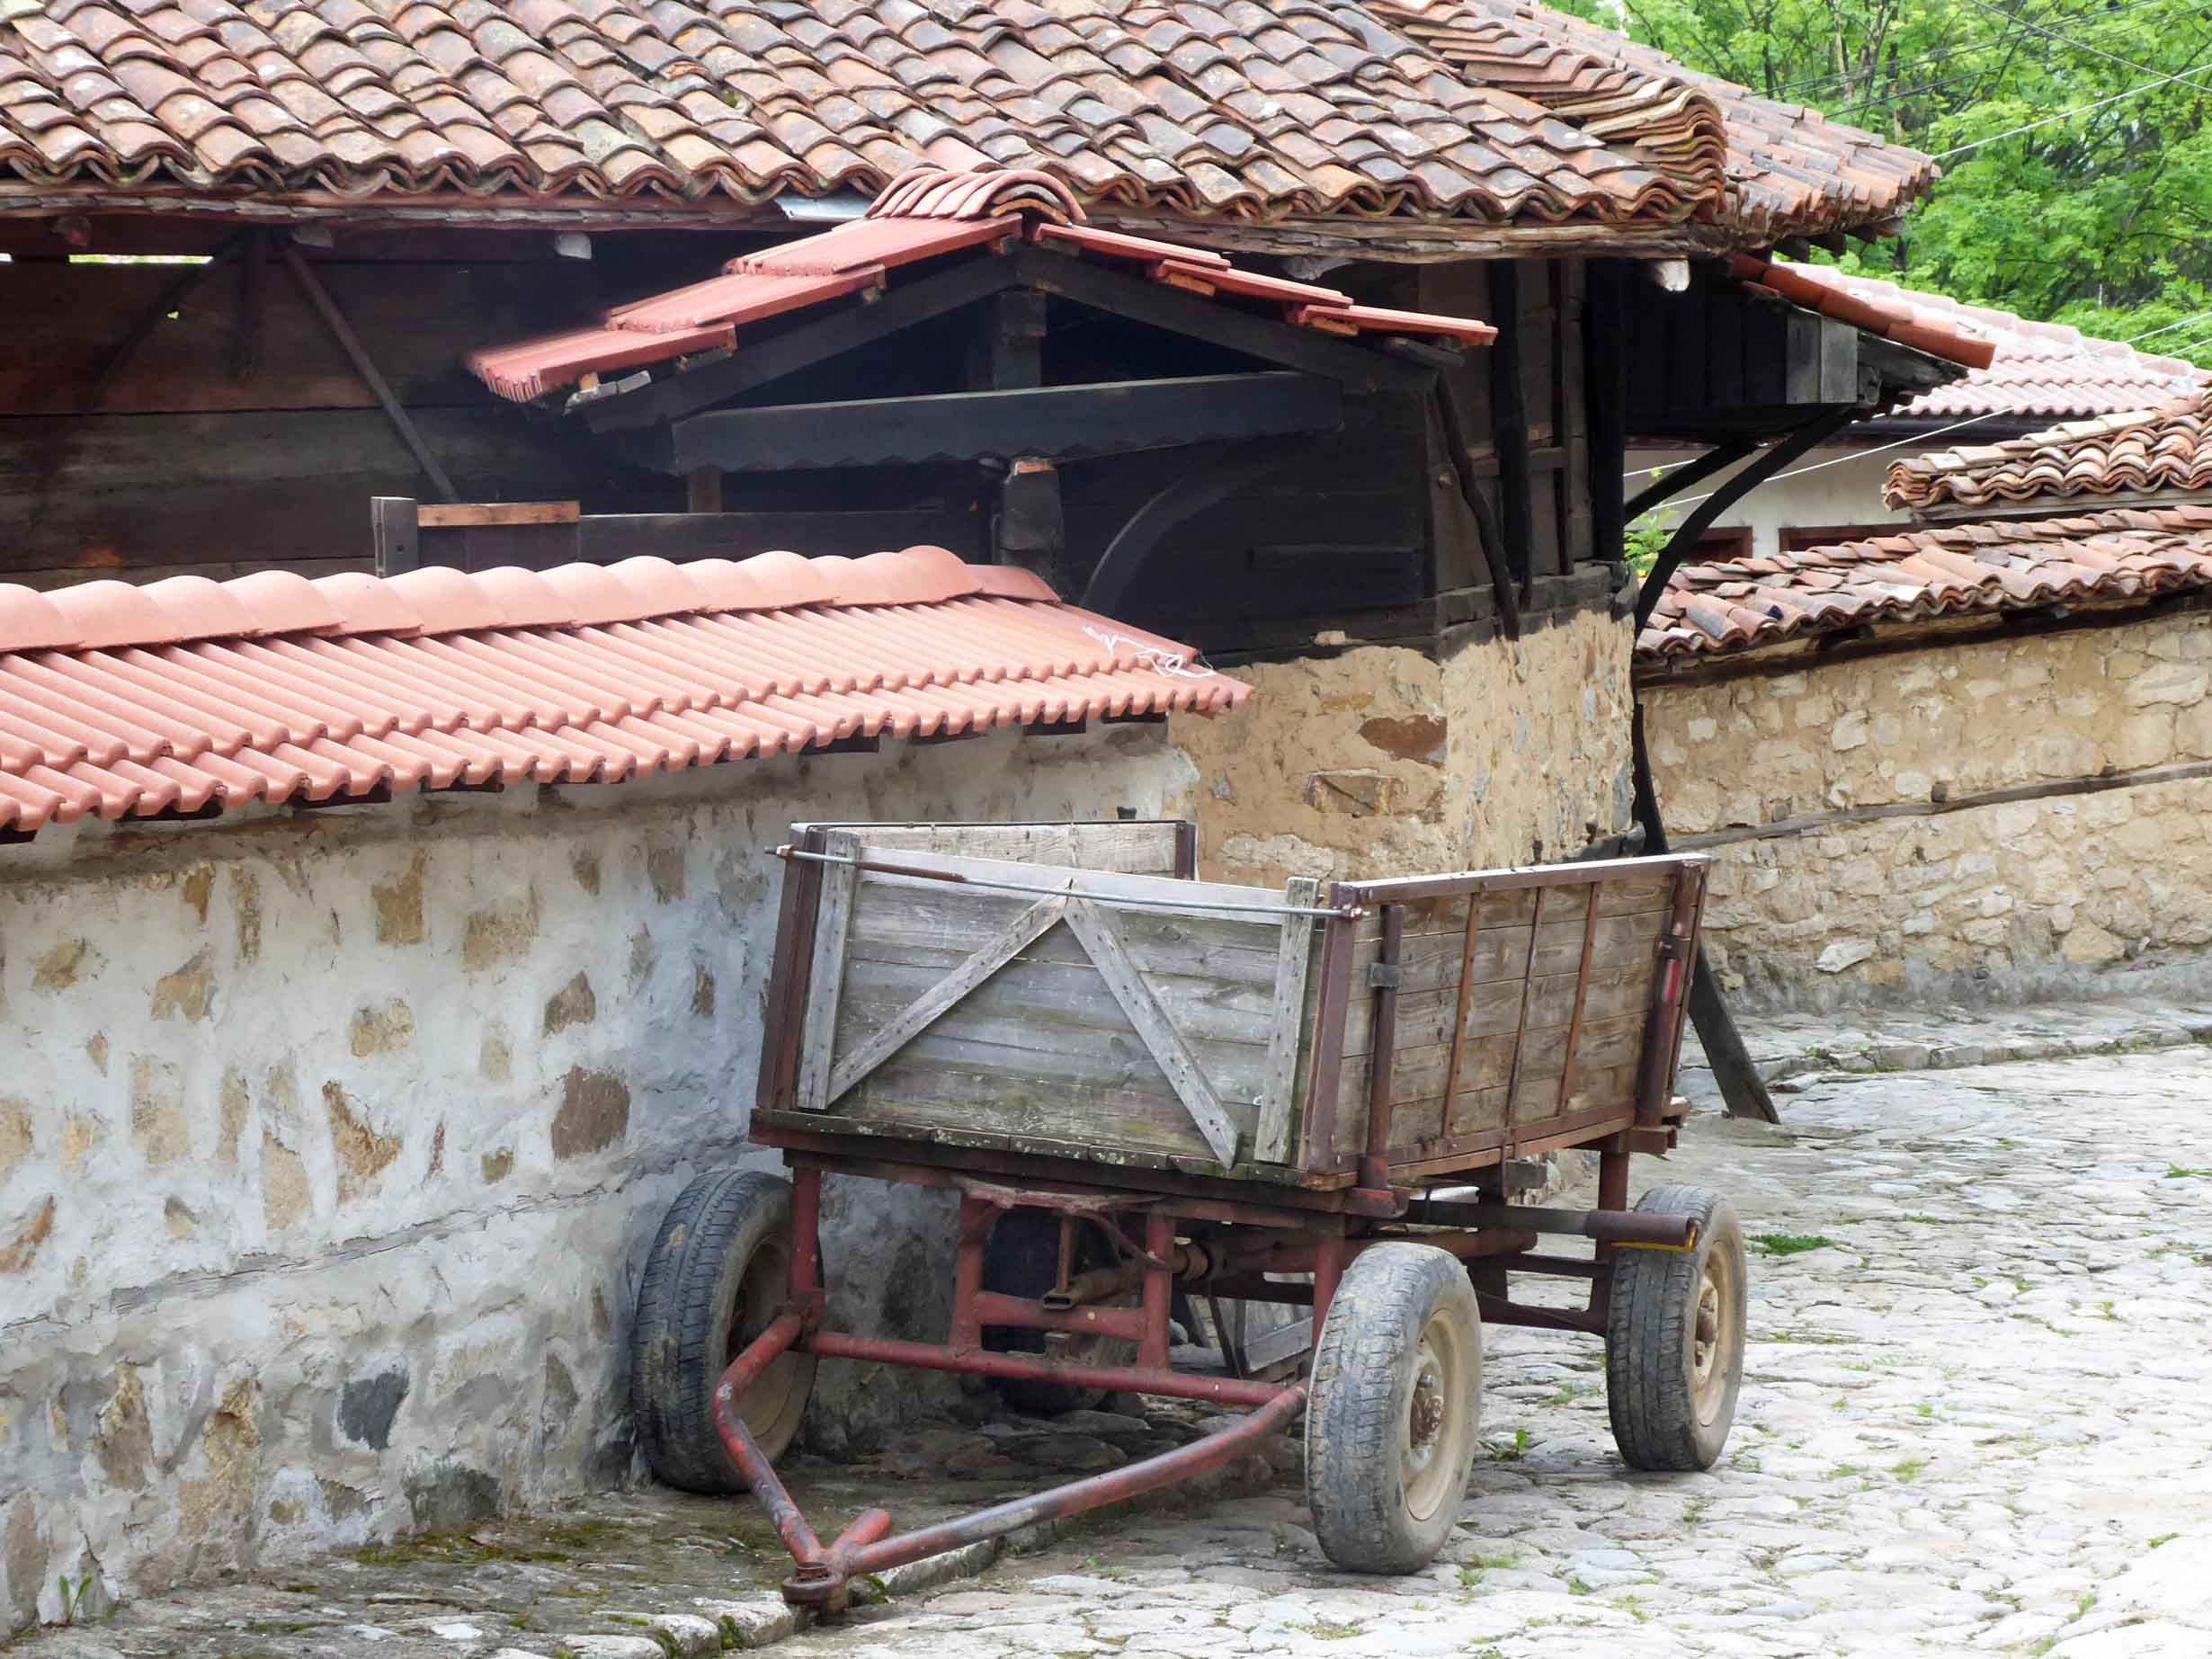 Old wooden cart on cobbled street